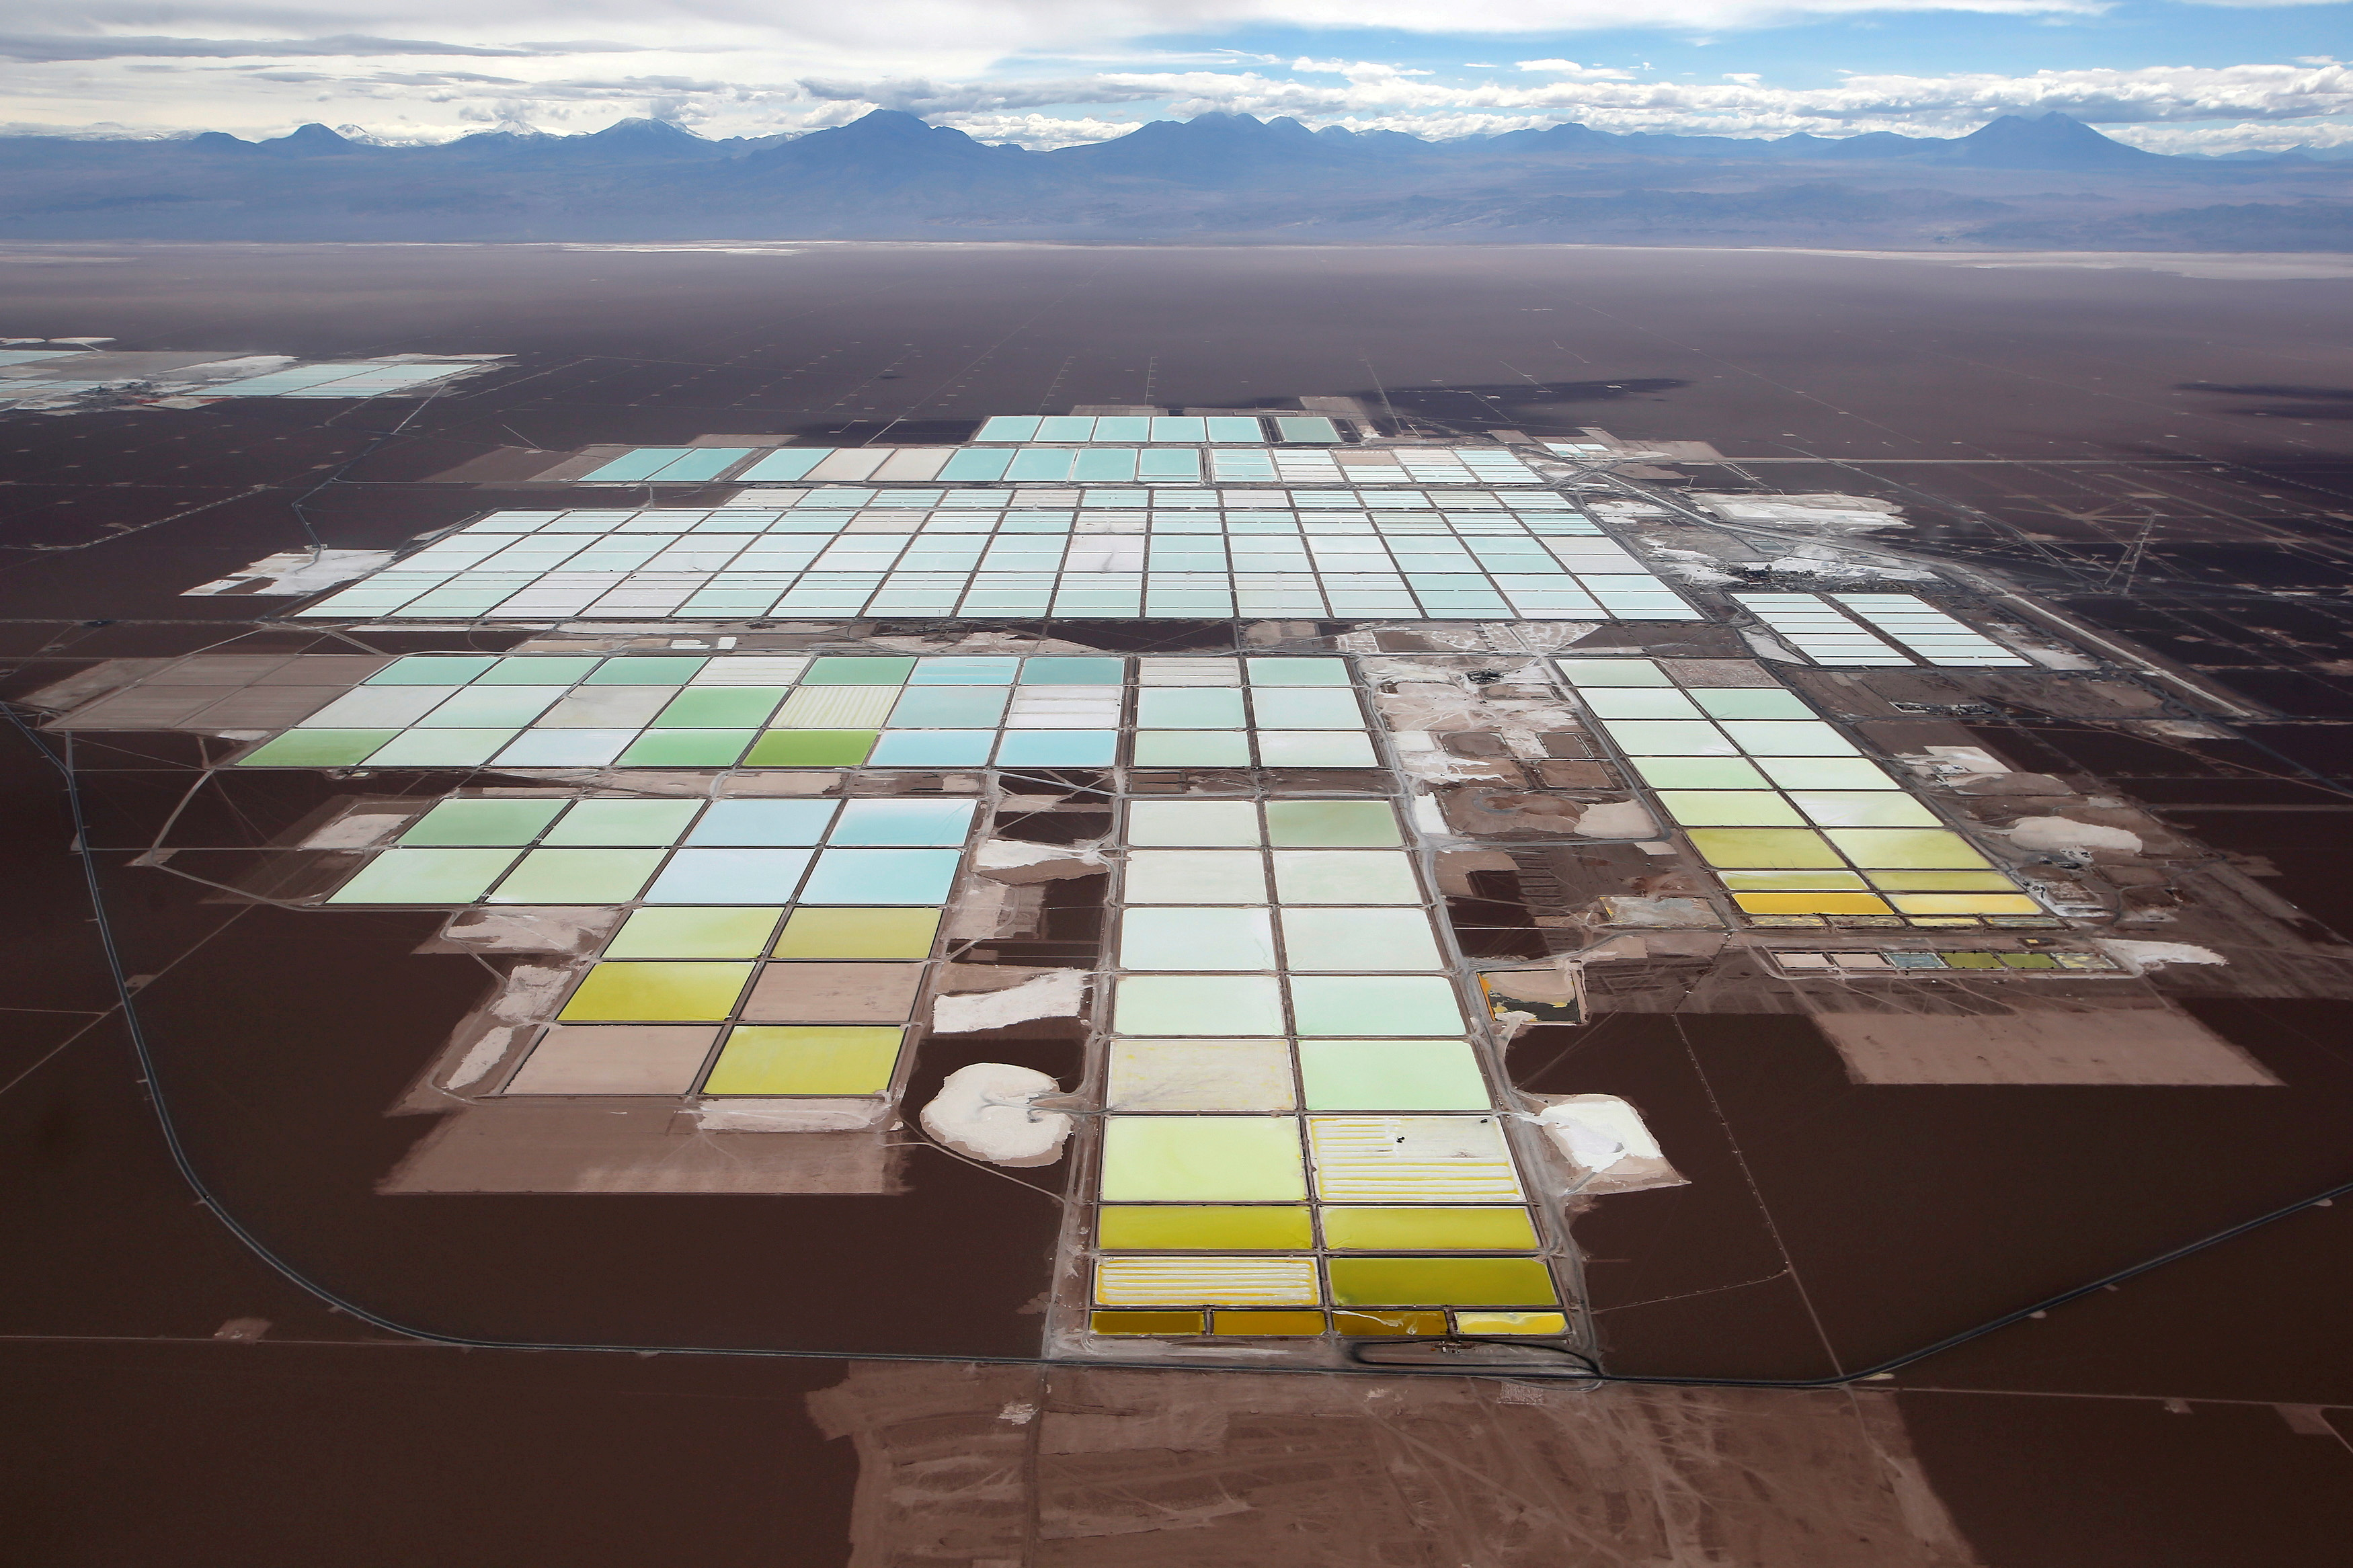 An aerial view shows the brine pools and processing areas of the Soquimich (SQM) lithium mine on the Atacama salt flat in the Atacama desert of northern Chile, January 10, 2013. REUTERS/Ivan Alvarado